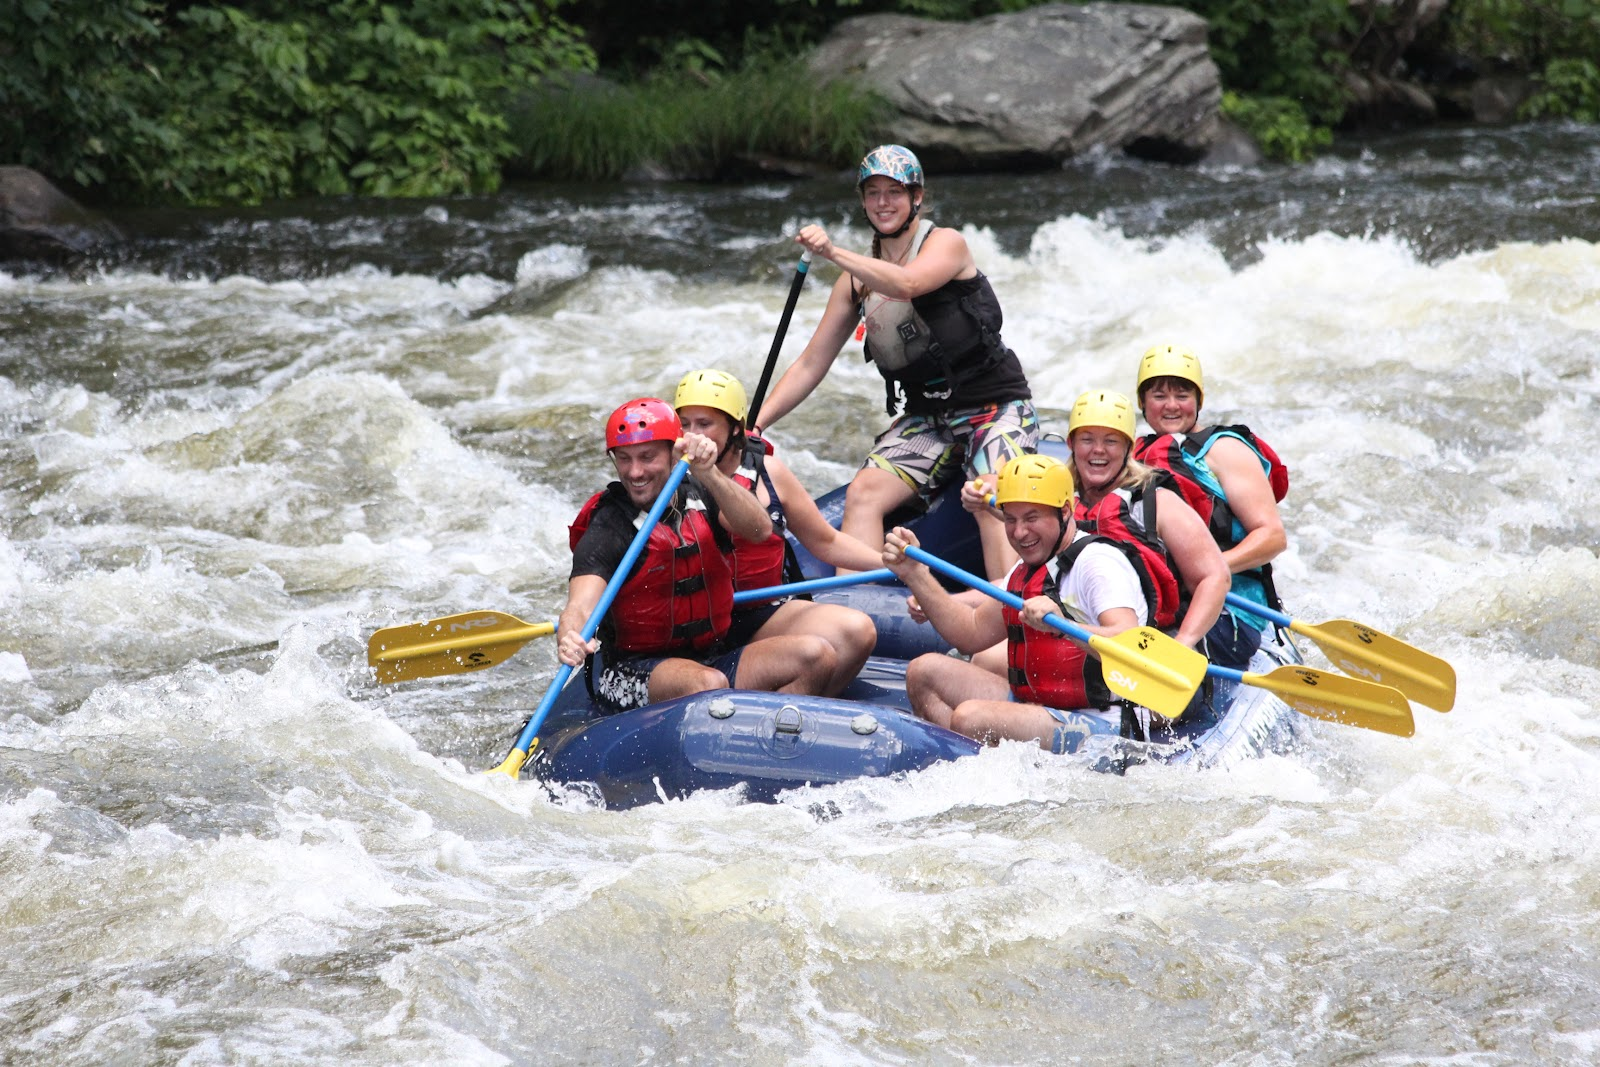 Guided rafting trip going through some white water